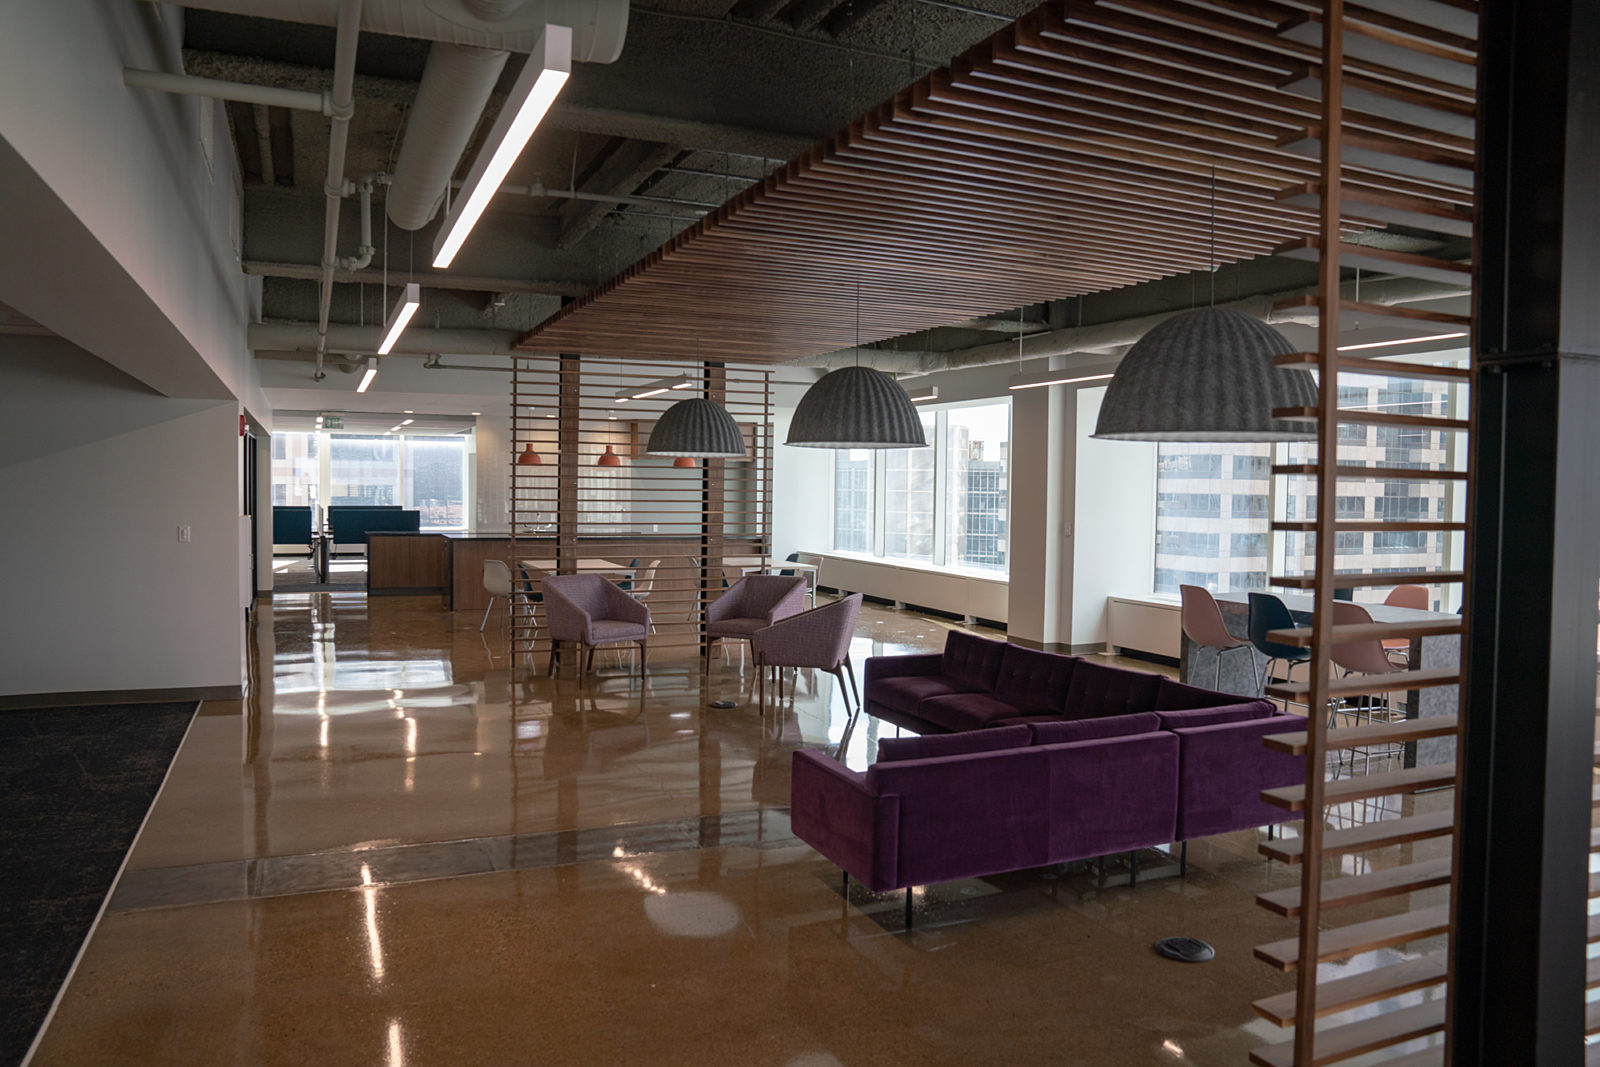 Lev Project Highlight: open lounge seating area